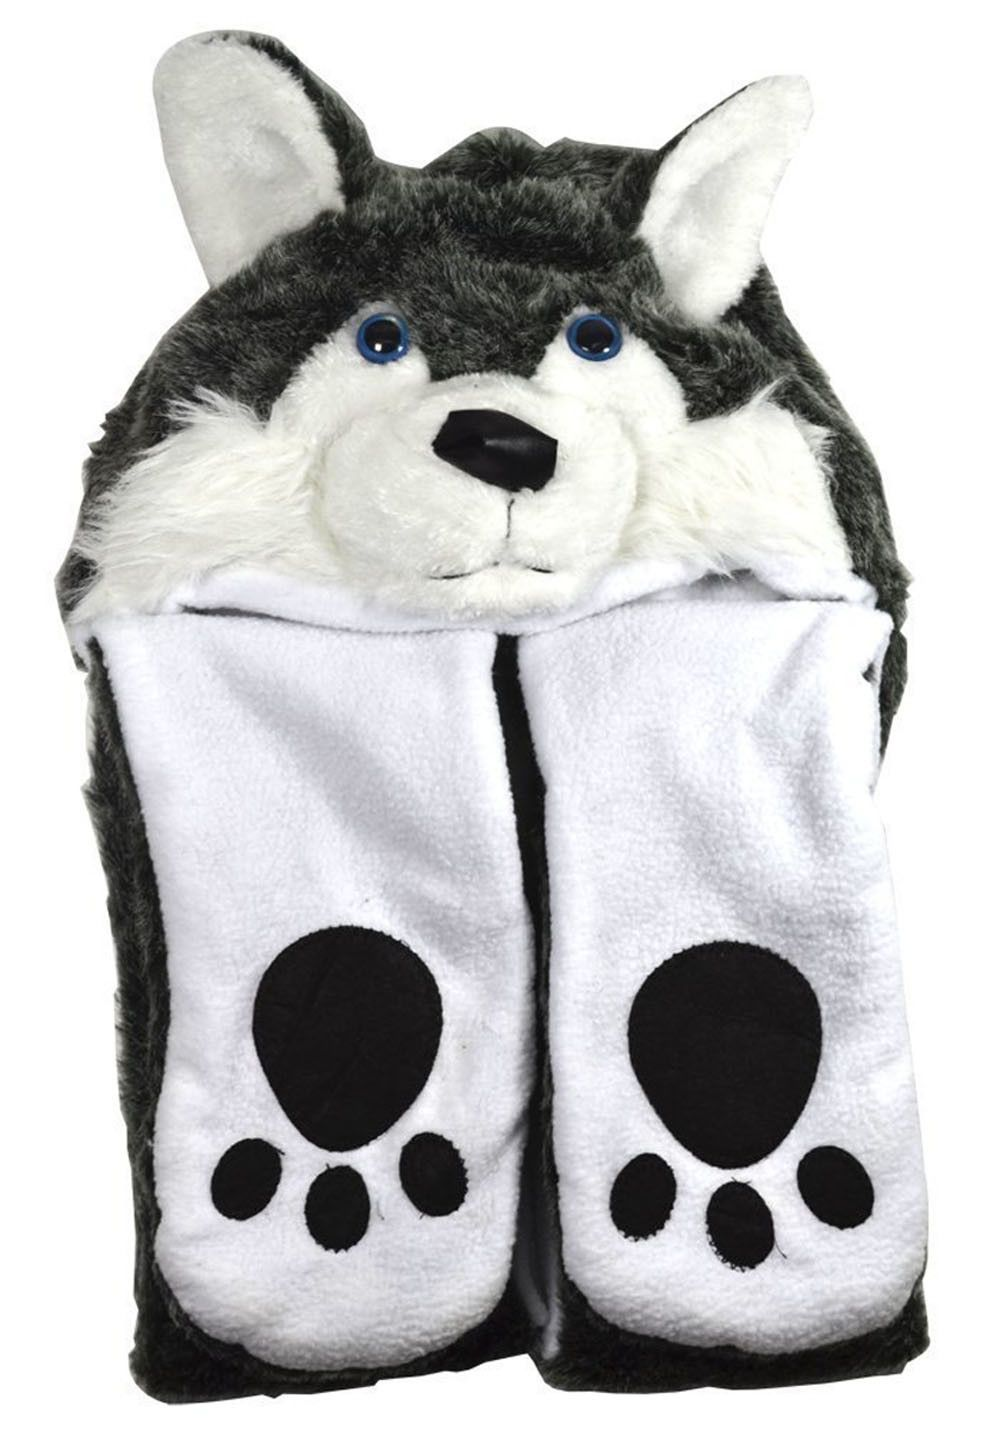 60445aa12b4 Stylish plush husky dog design that is soft and comfortable to wear.  Protects your head